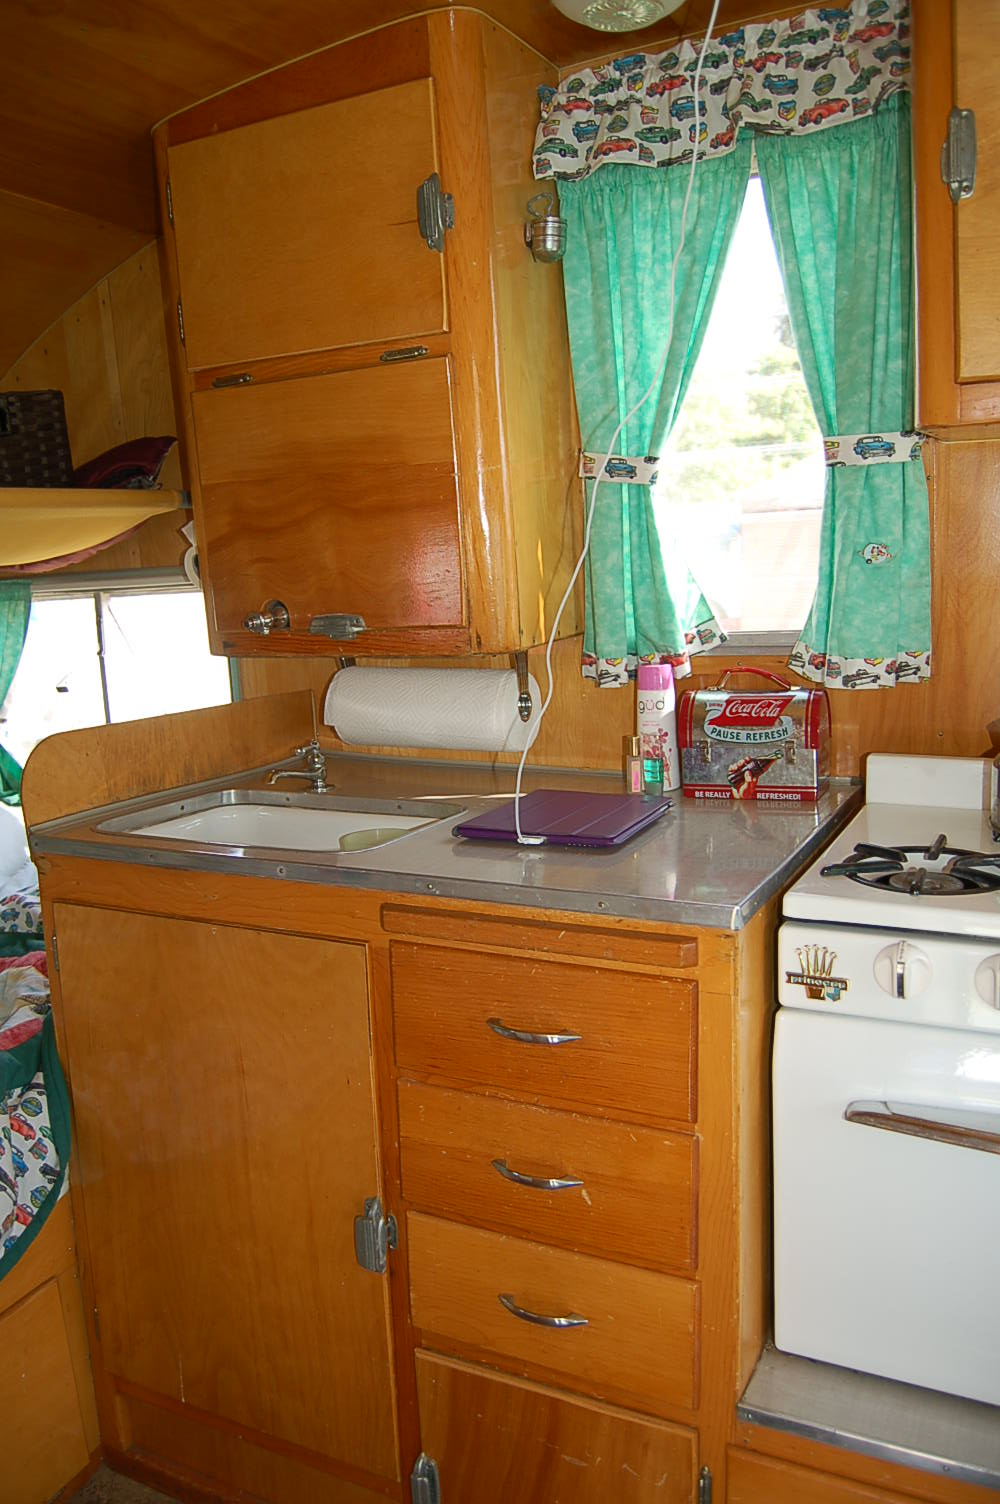 Vintage Shasta Trailer Interiors, from OldTrailercom